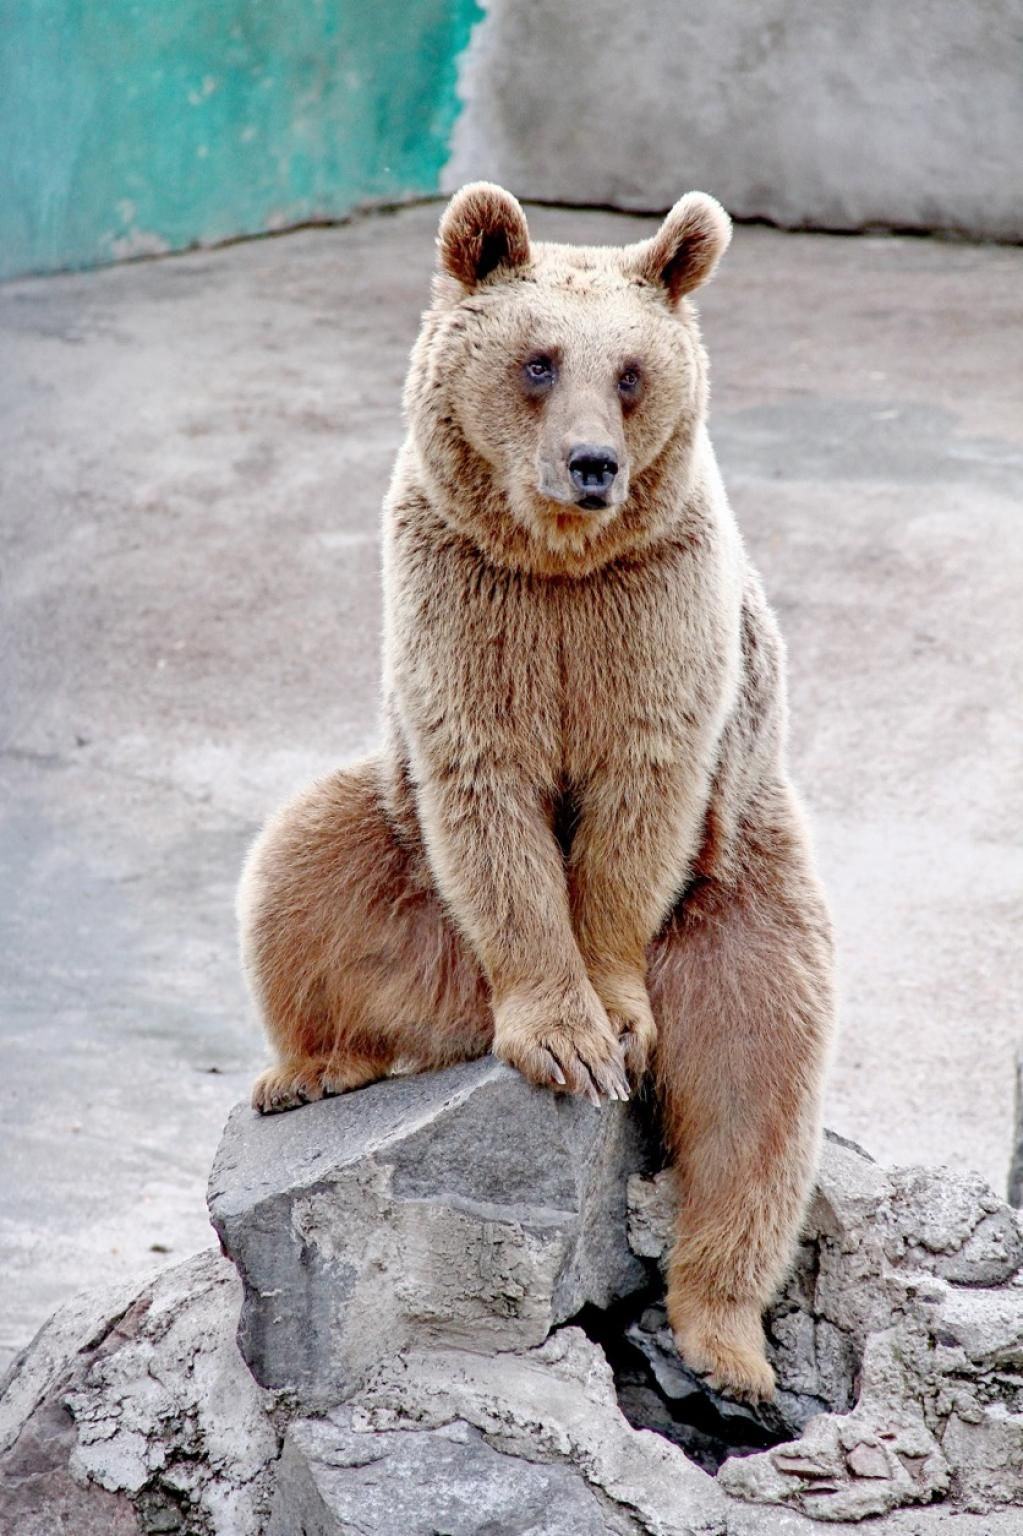 picture of a bear  #freetoedi